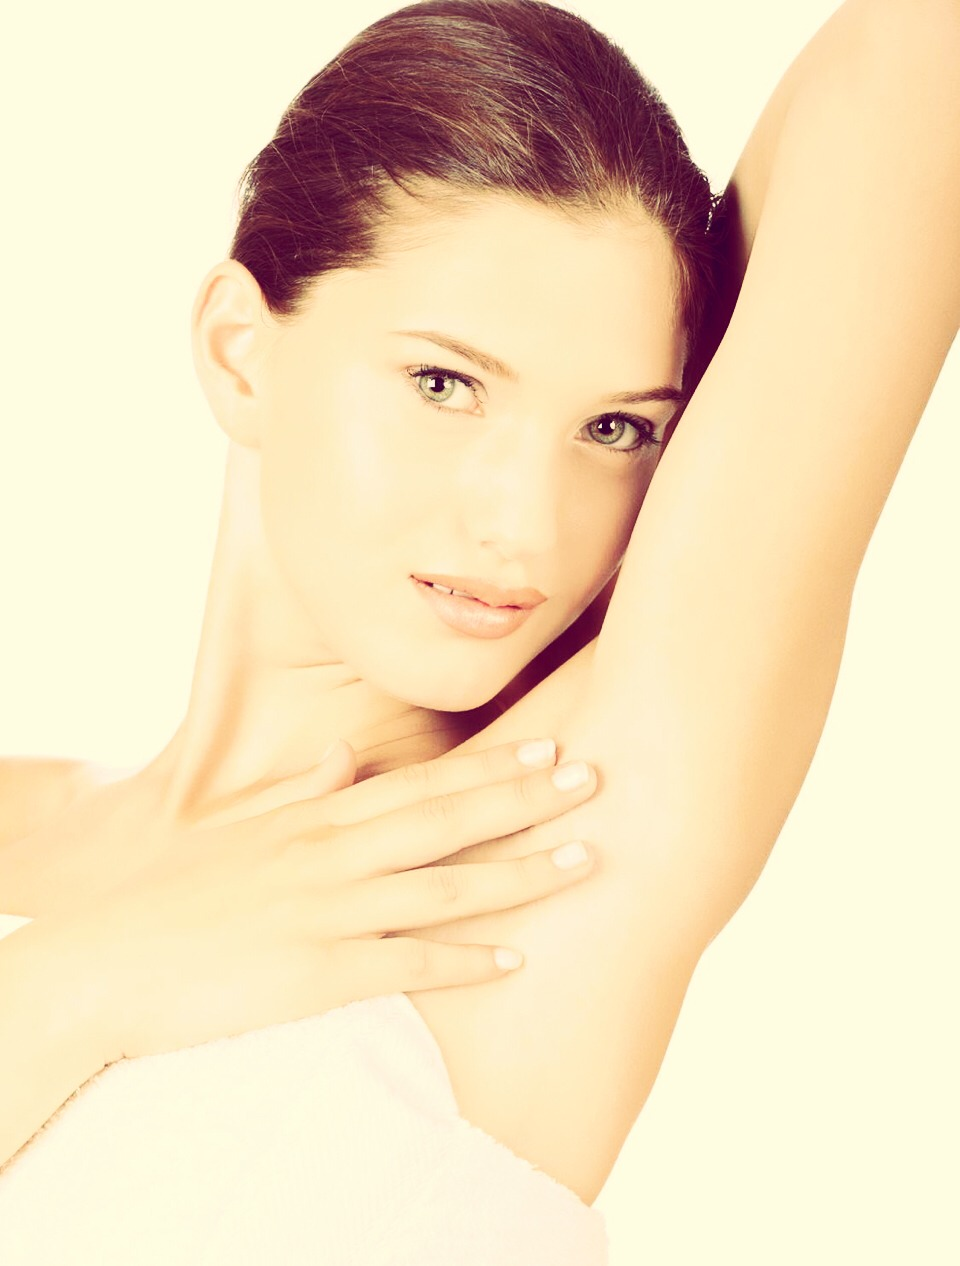 how to get rid of dark armpits with lemon